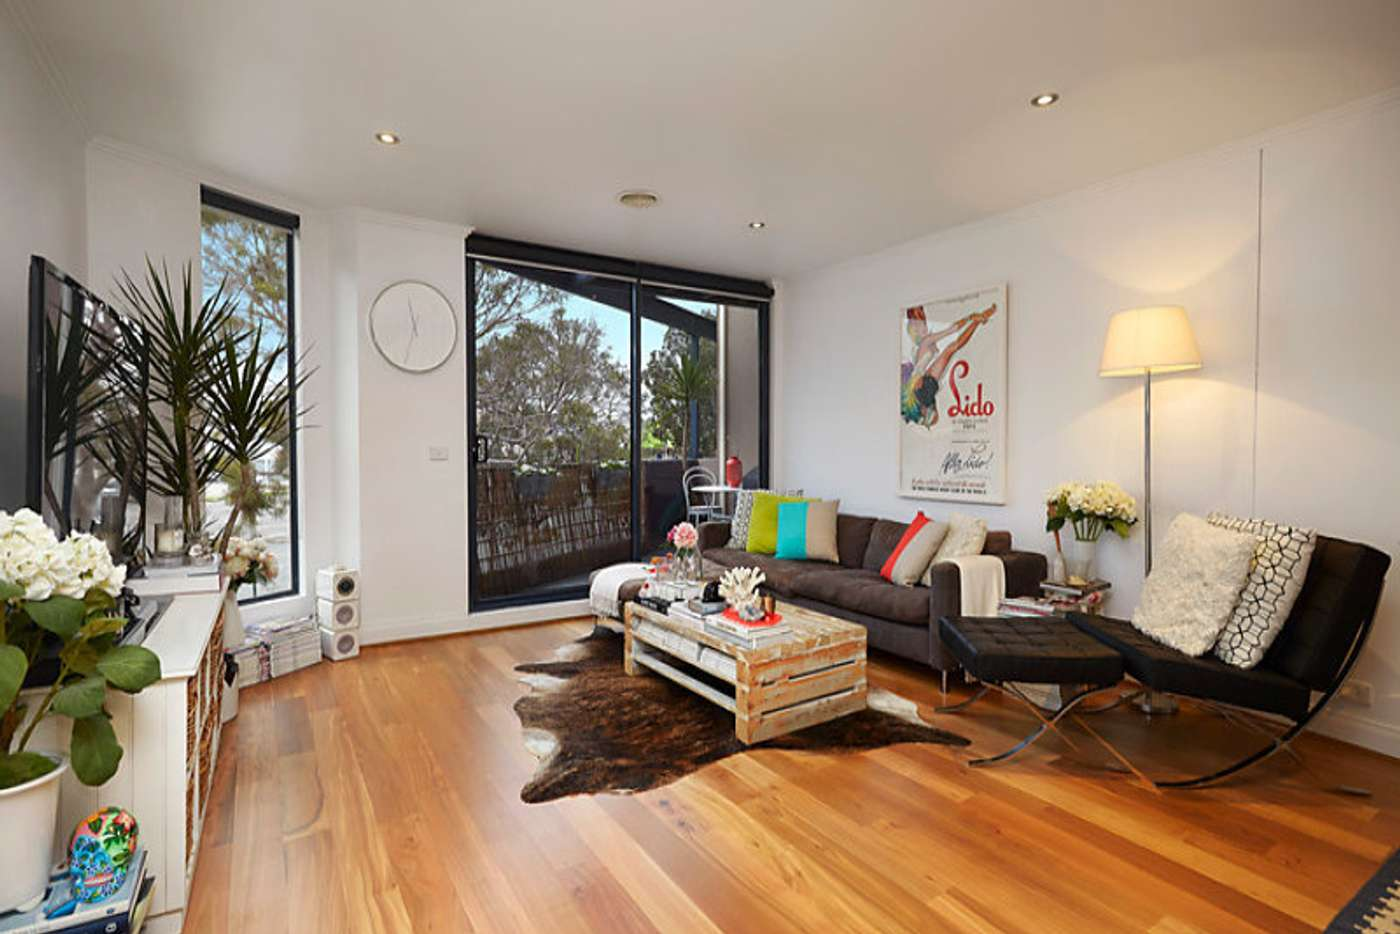 Main view of Homely apartment listing, 10/16-18 Spink St, Brighton VIC 3186